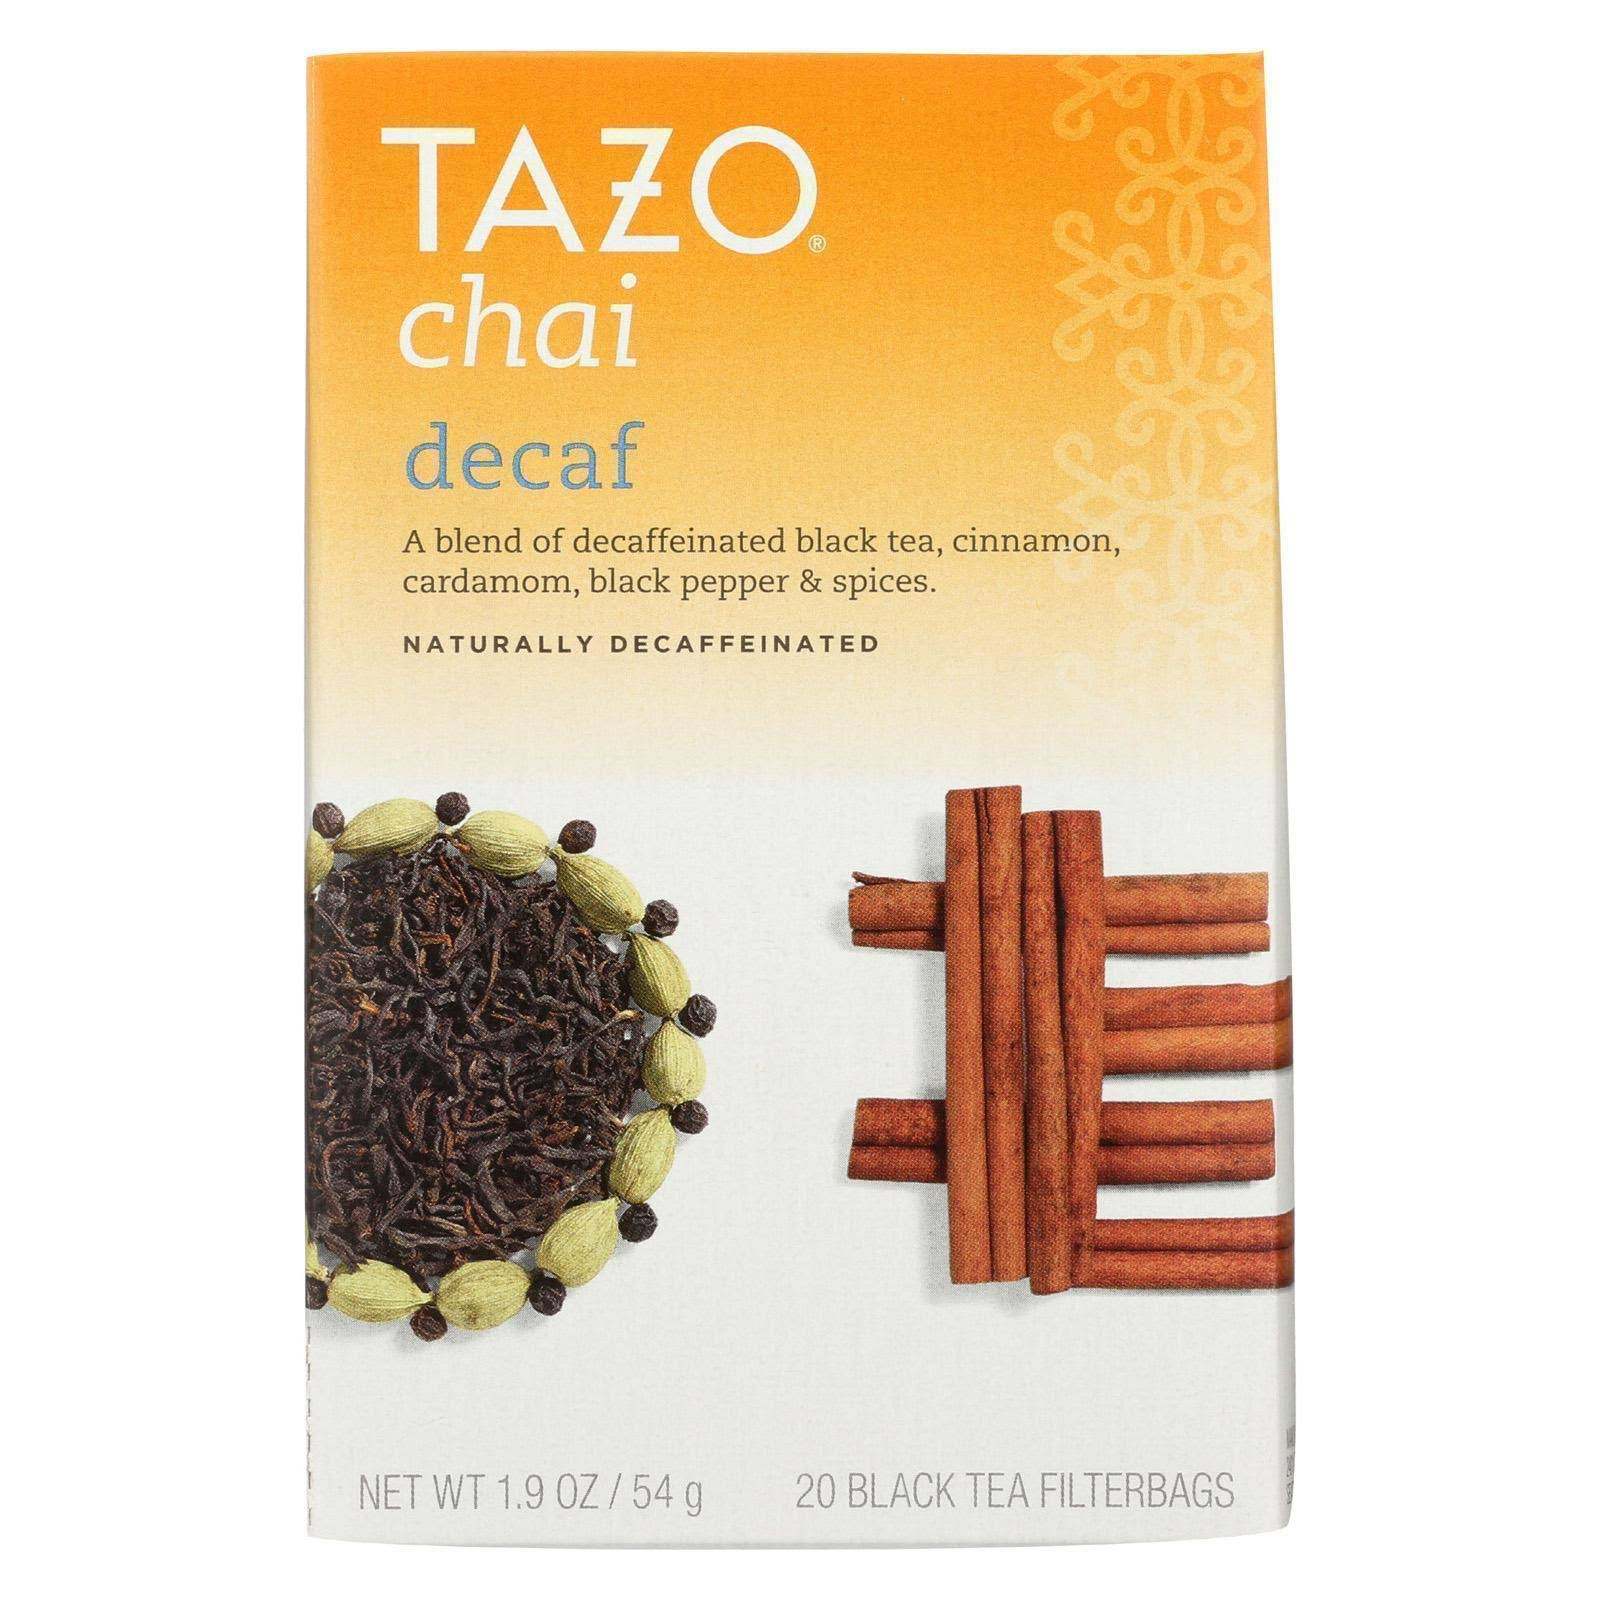 Tazo Black Tea Filterbags - Chai Decaf, 1.9oz, 20pcs